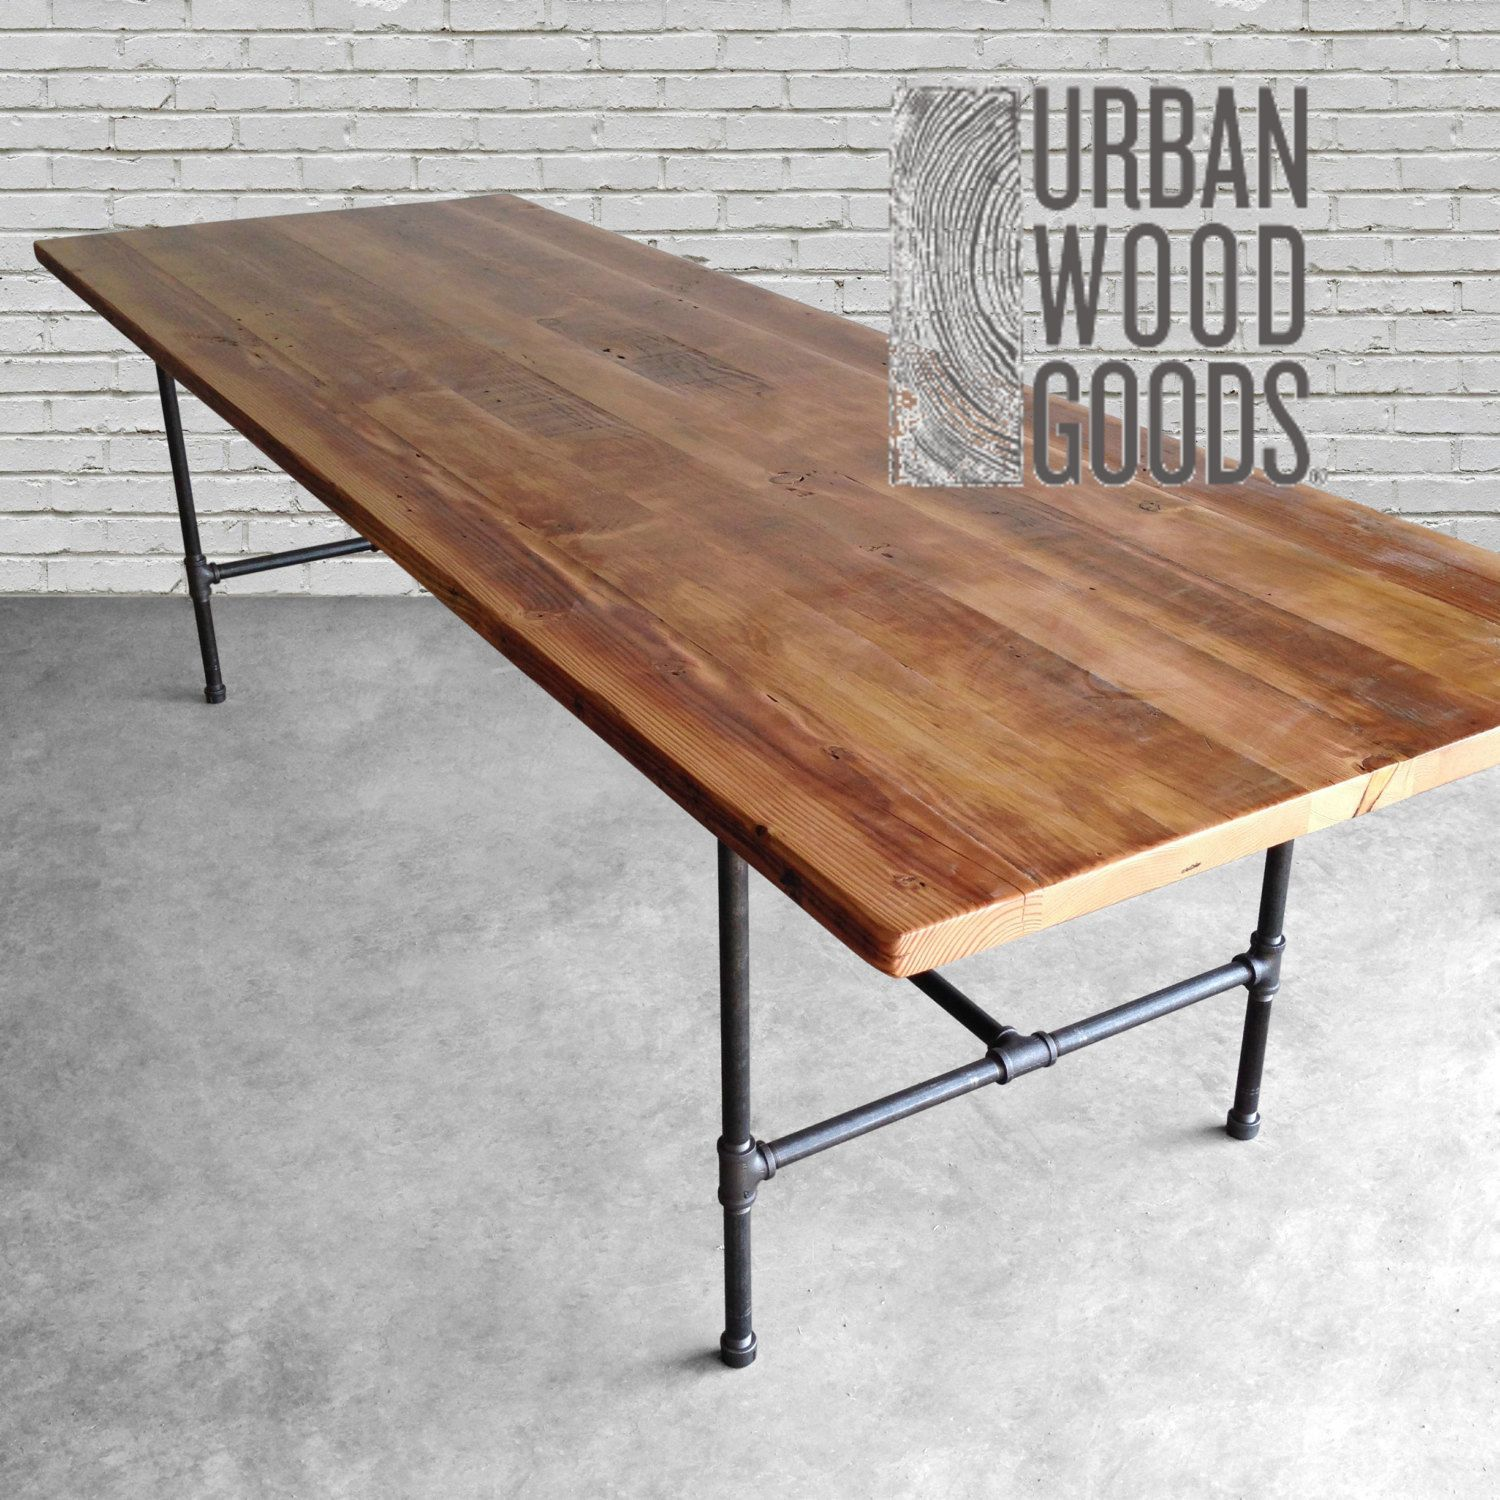 Wood dining table made with reclaimed wood top and iron pipe legs